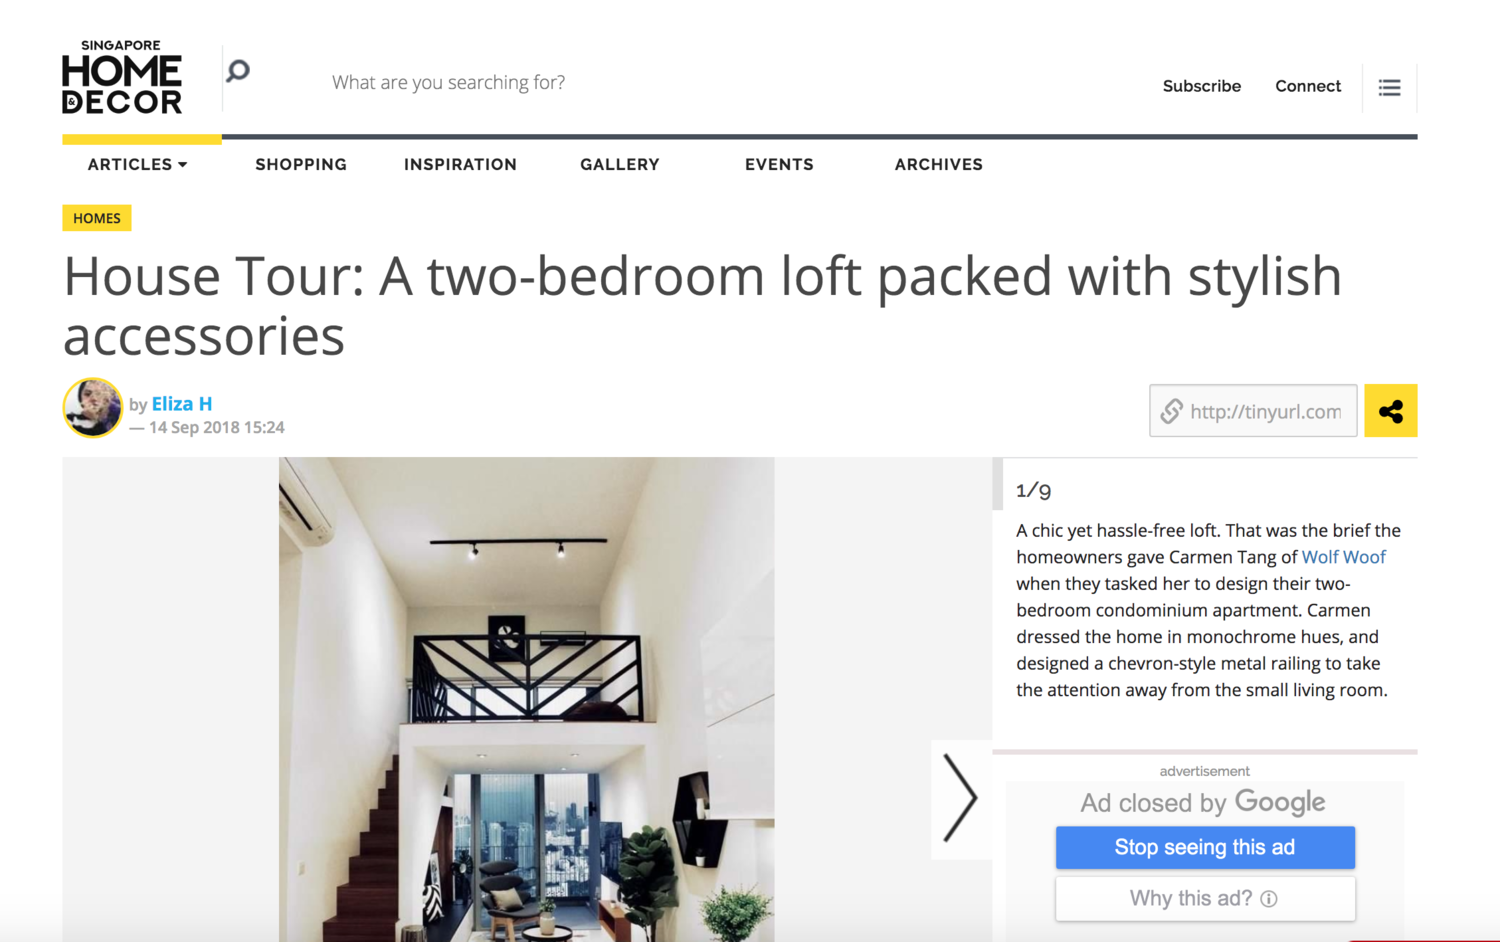 Home & Decor Online - https://www.homeanddecor.com.sg/articles/111292-house-tour-two-bedroom-loft-packed-stylish-accessories